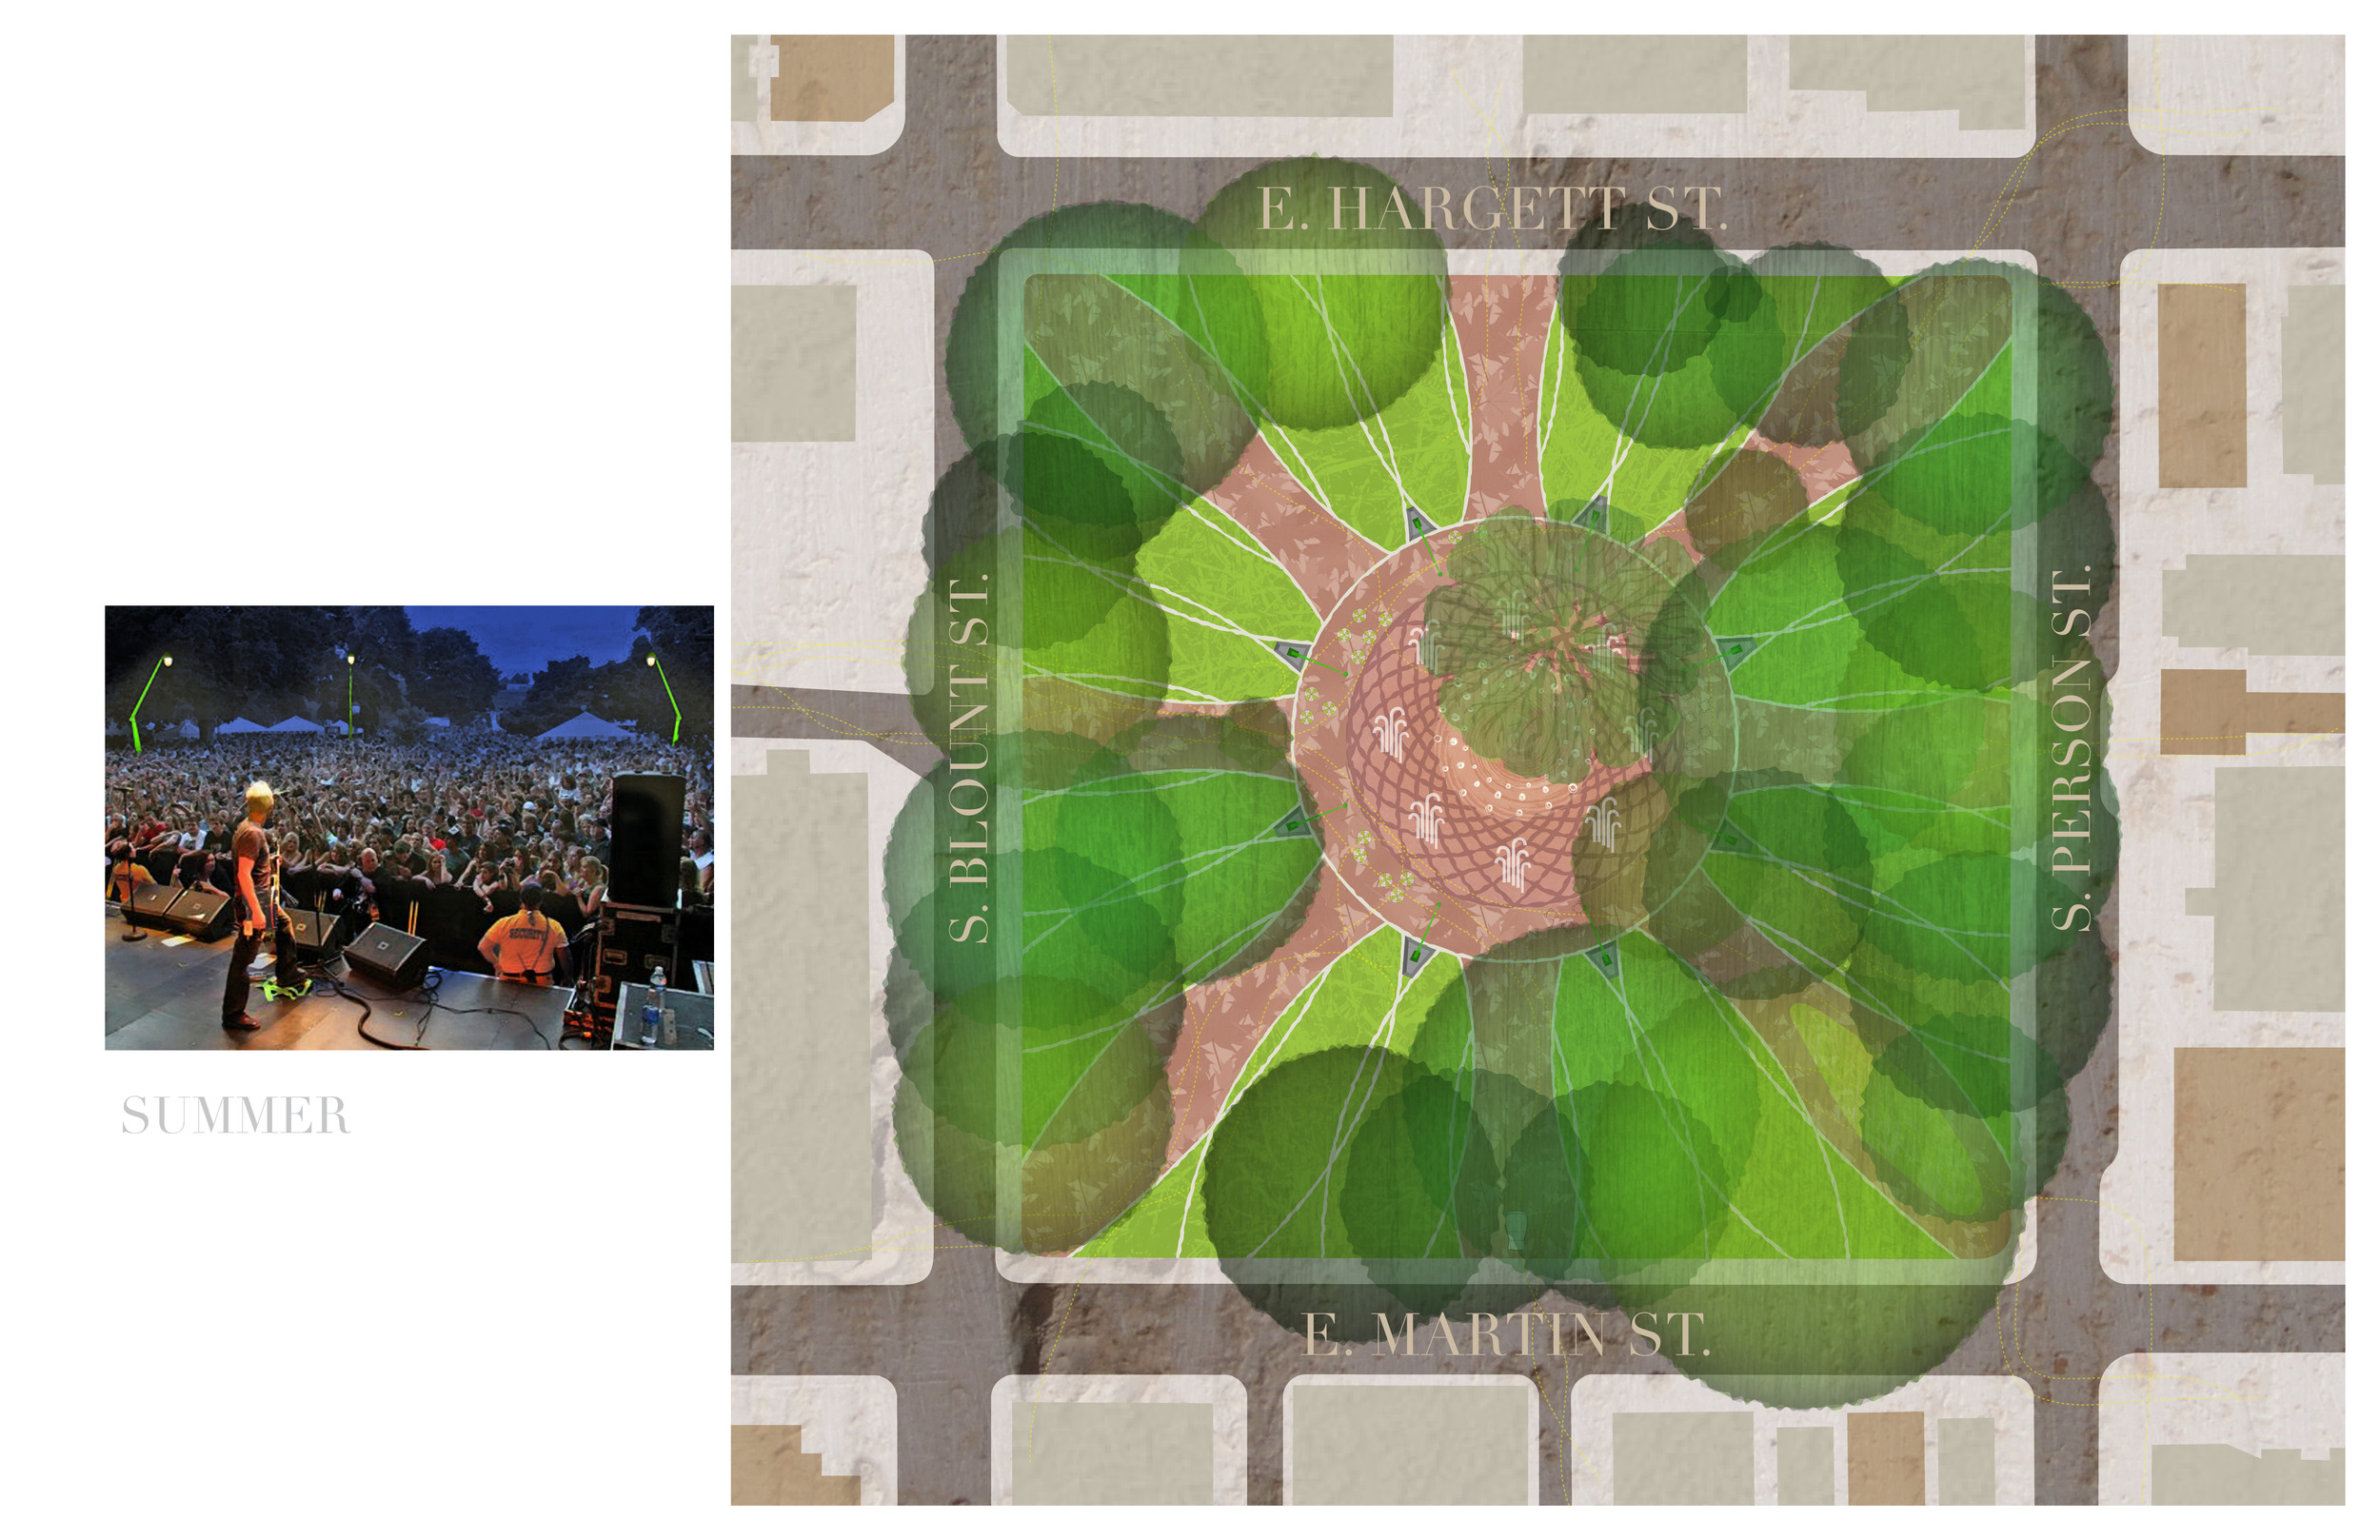 Summer plan of park showing fountains and night time event space in central plaza shown in image.